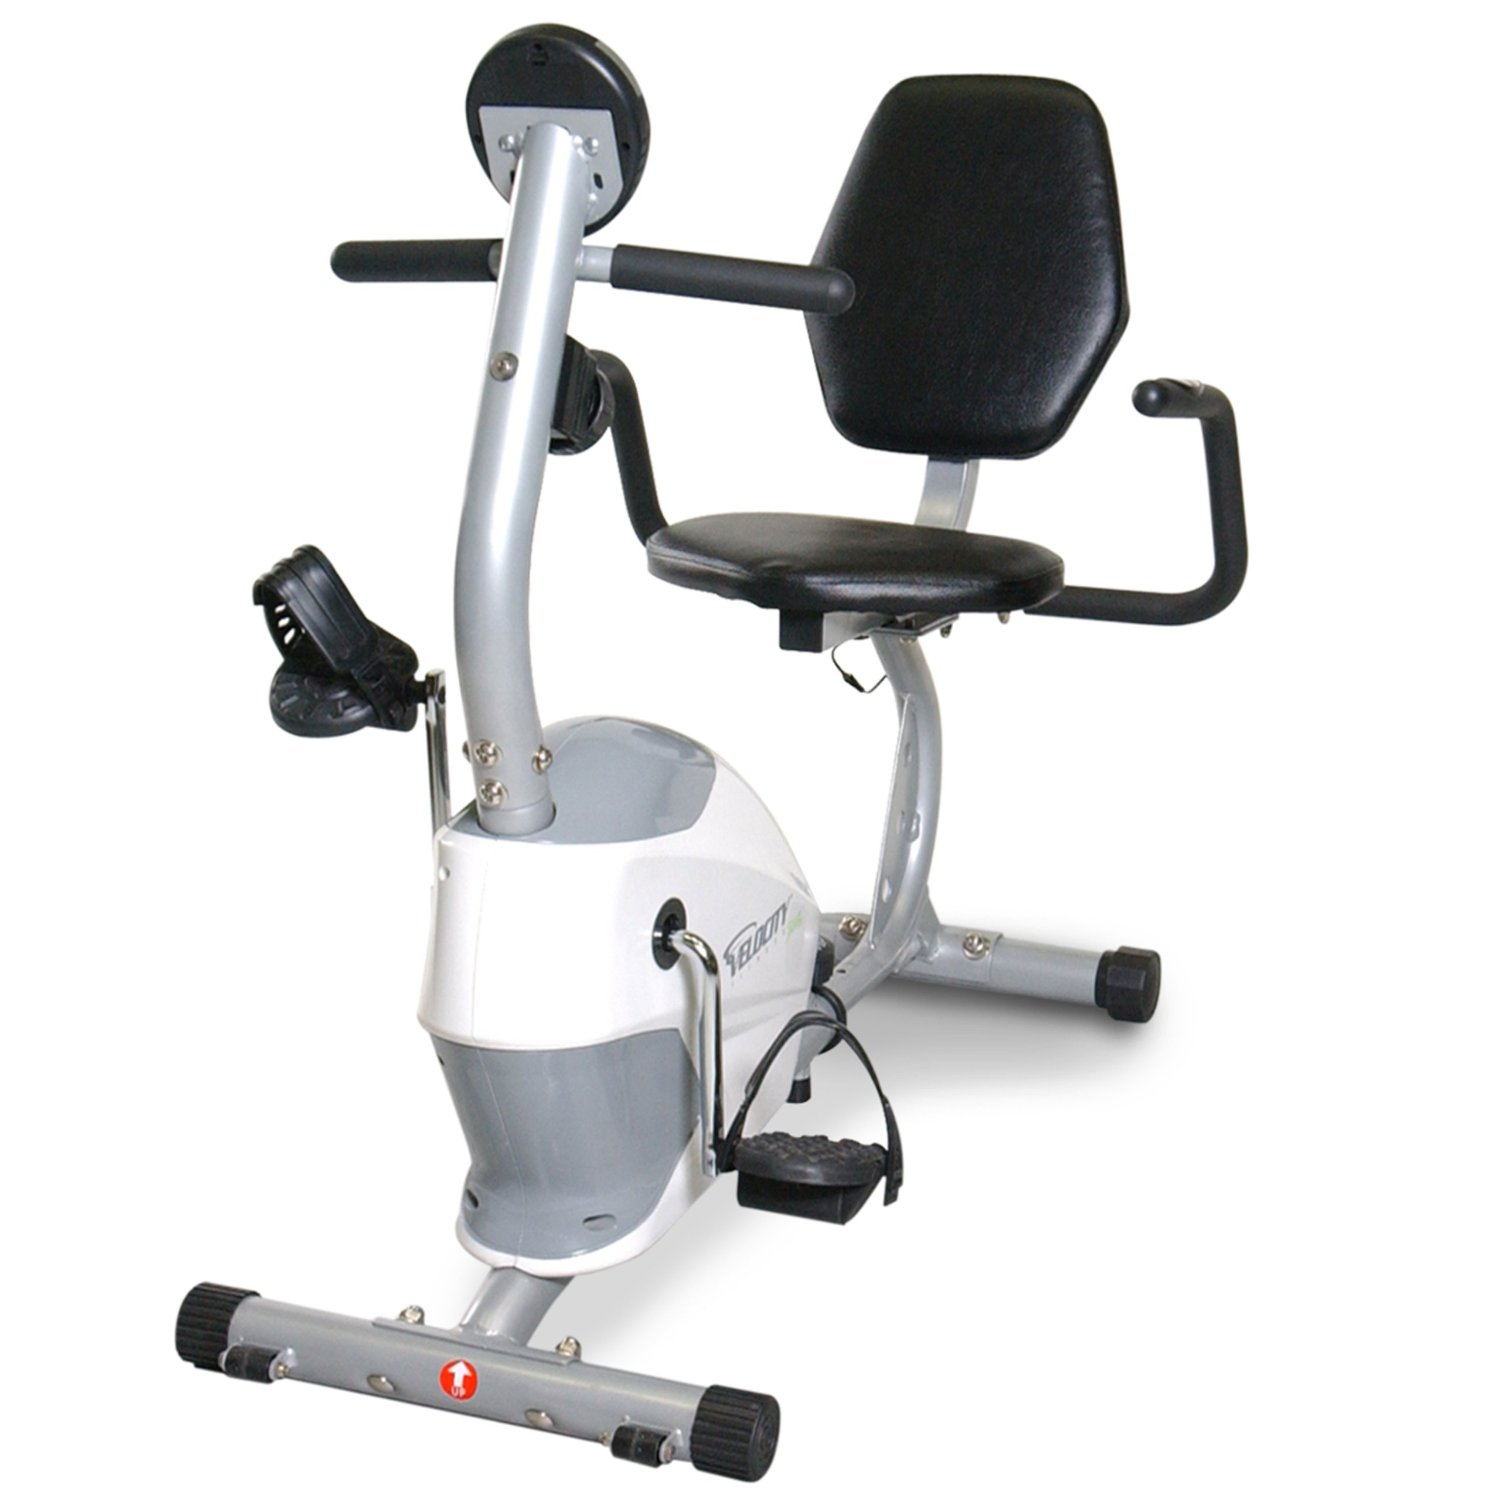 Schwinn SRB 1500 Recumbent Bike http://www.wxfitness.com/schwinn-ad6-airdyne-exercise-bike-review/